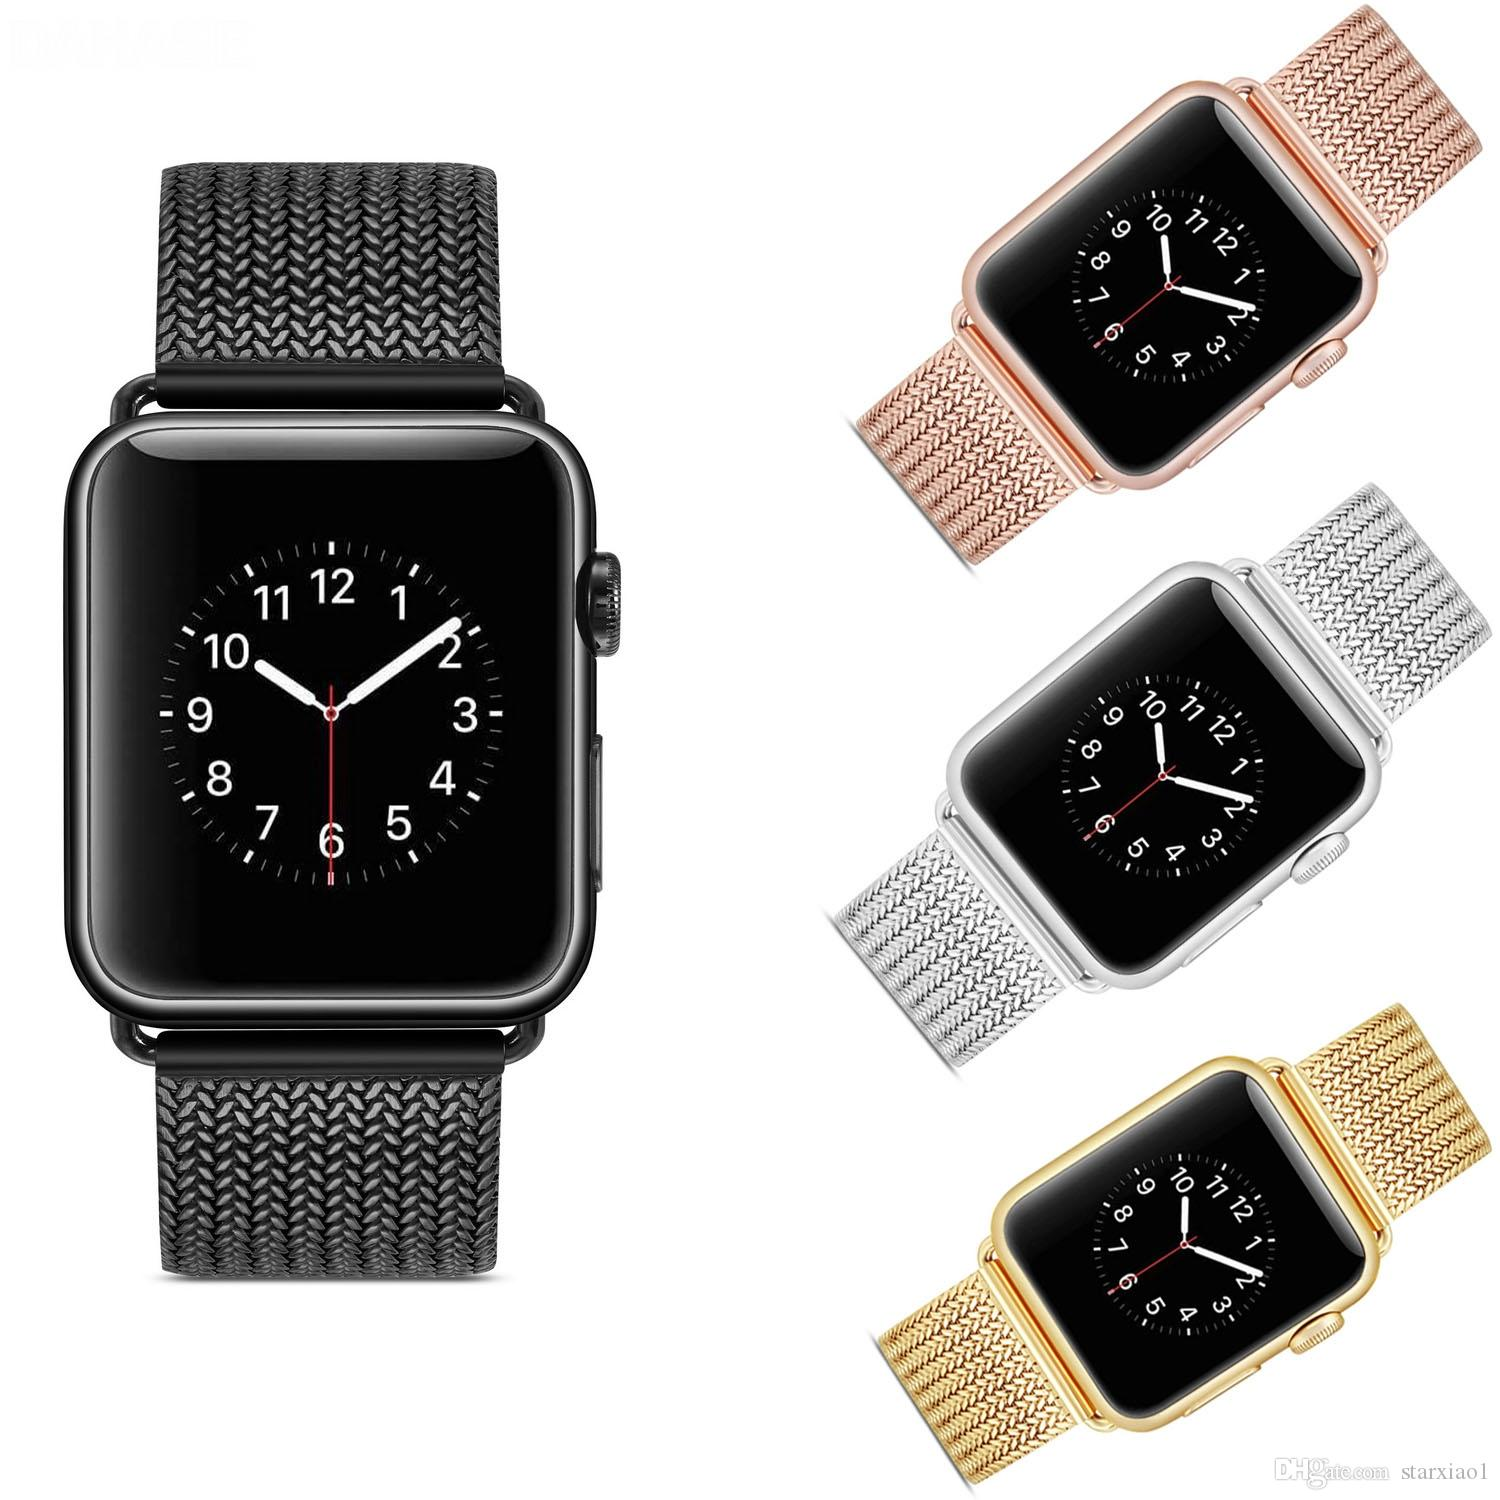 Luxury Milanese Loop For Apple Watch Series 4 3 2 Replacement Bracelet Band  Iwatch 40/44mm 38/42mm Stainless Steel Strap Buckle Connector Watch With  Leather Strap Wrist Watch Straps From Starxiao1, $11.46| DHgate.Com